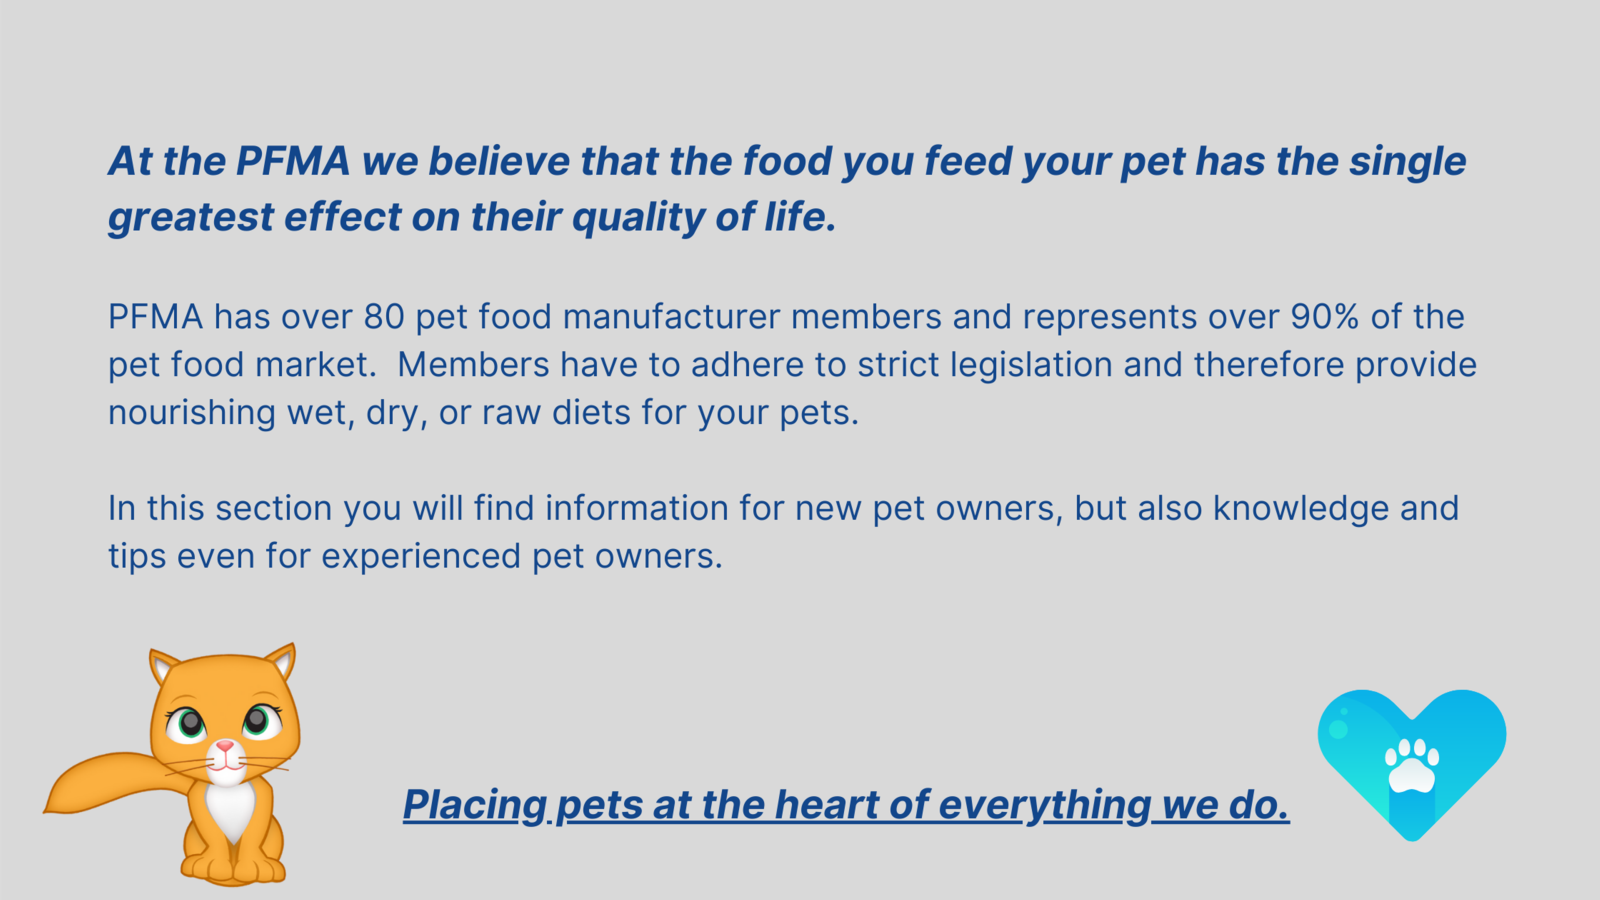 At the PFMA we believe that the food you feed your pet has the single greatest effect on their quality of life.  PFMA has over 80 pet food manufacturer members and represents over 90% of the pet food market.  Members have to adhere to strict legislation and therefore provide nourishing wet, dry, or raw diets for your pets.  